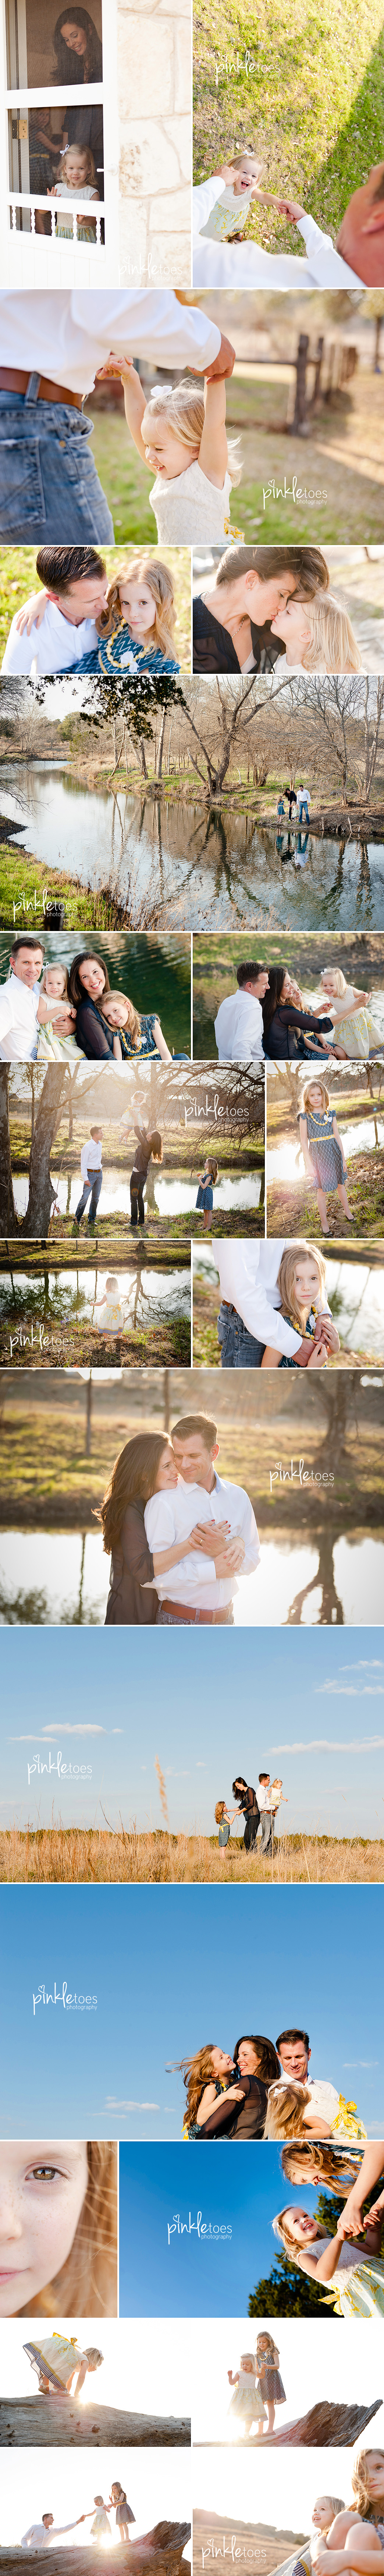 so-austin-country-ranch-lifestyle-candid-beautiful-family-kids-photography